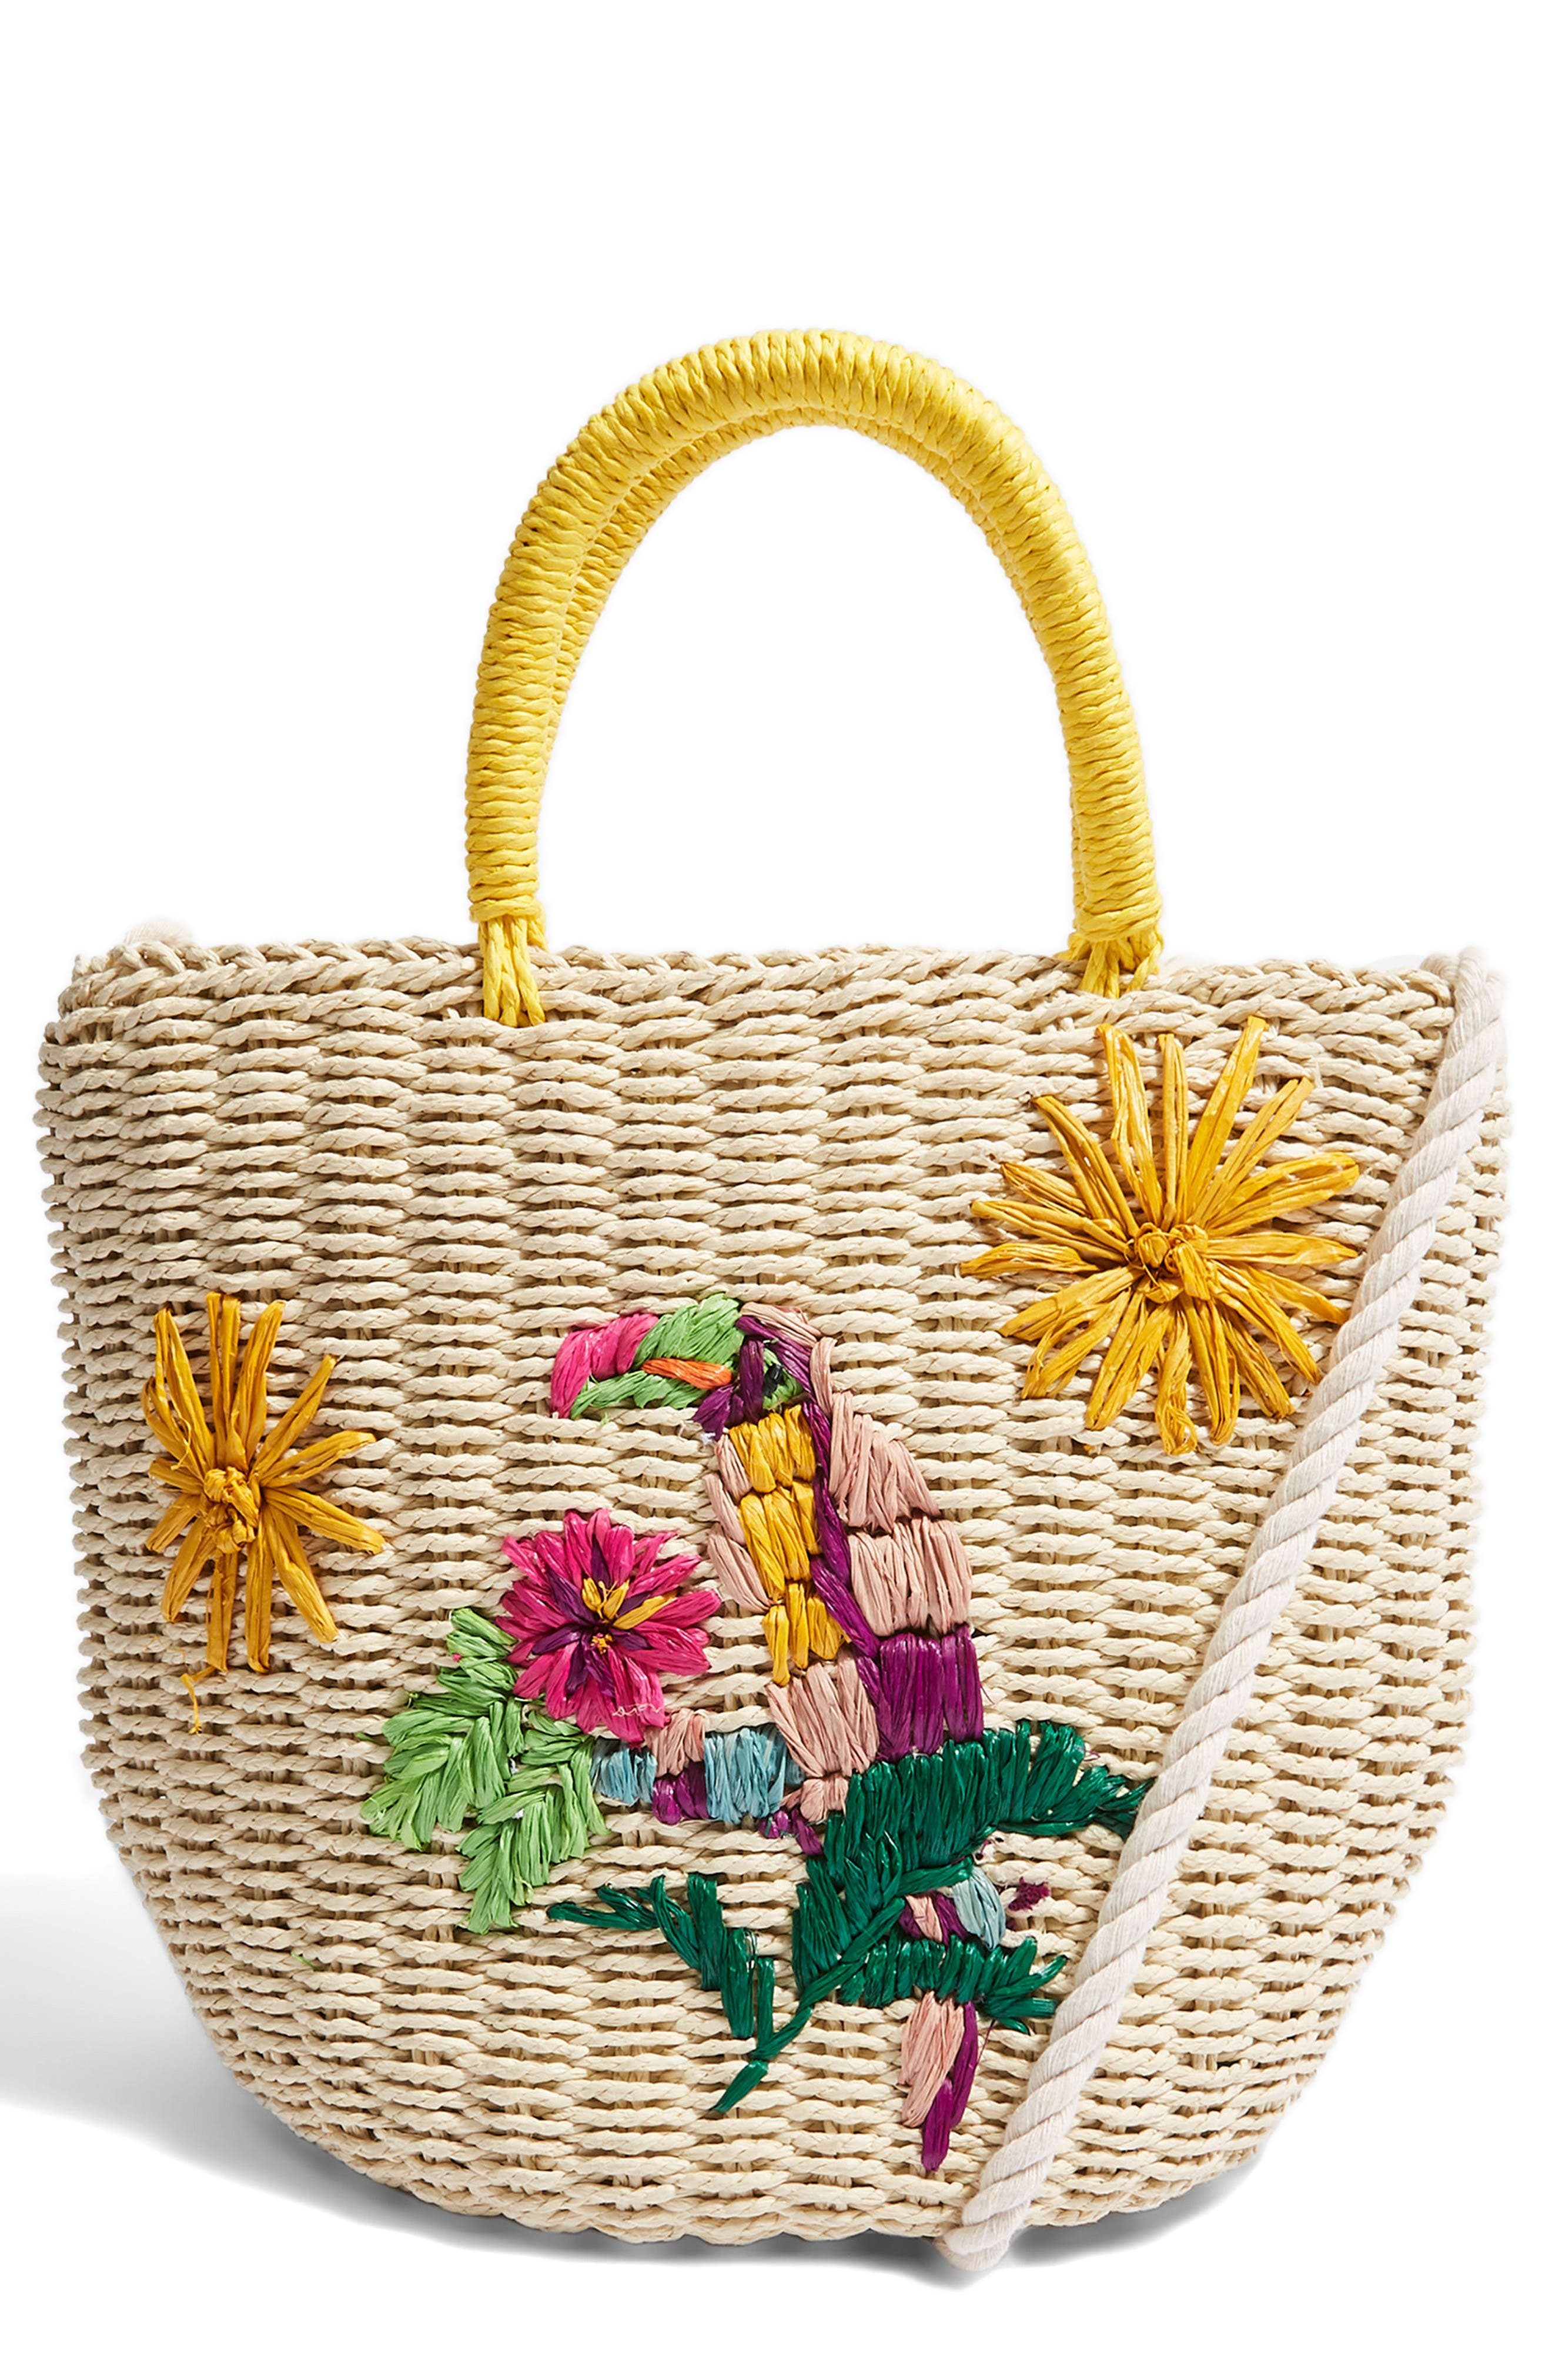 Betsy Toucan Straw Bag,                         Main,                         color,